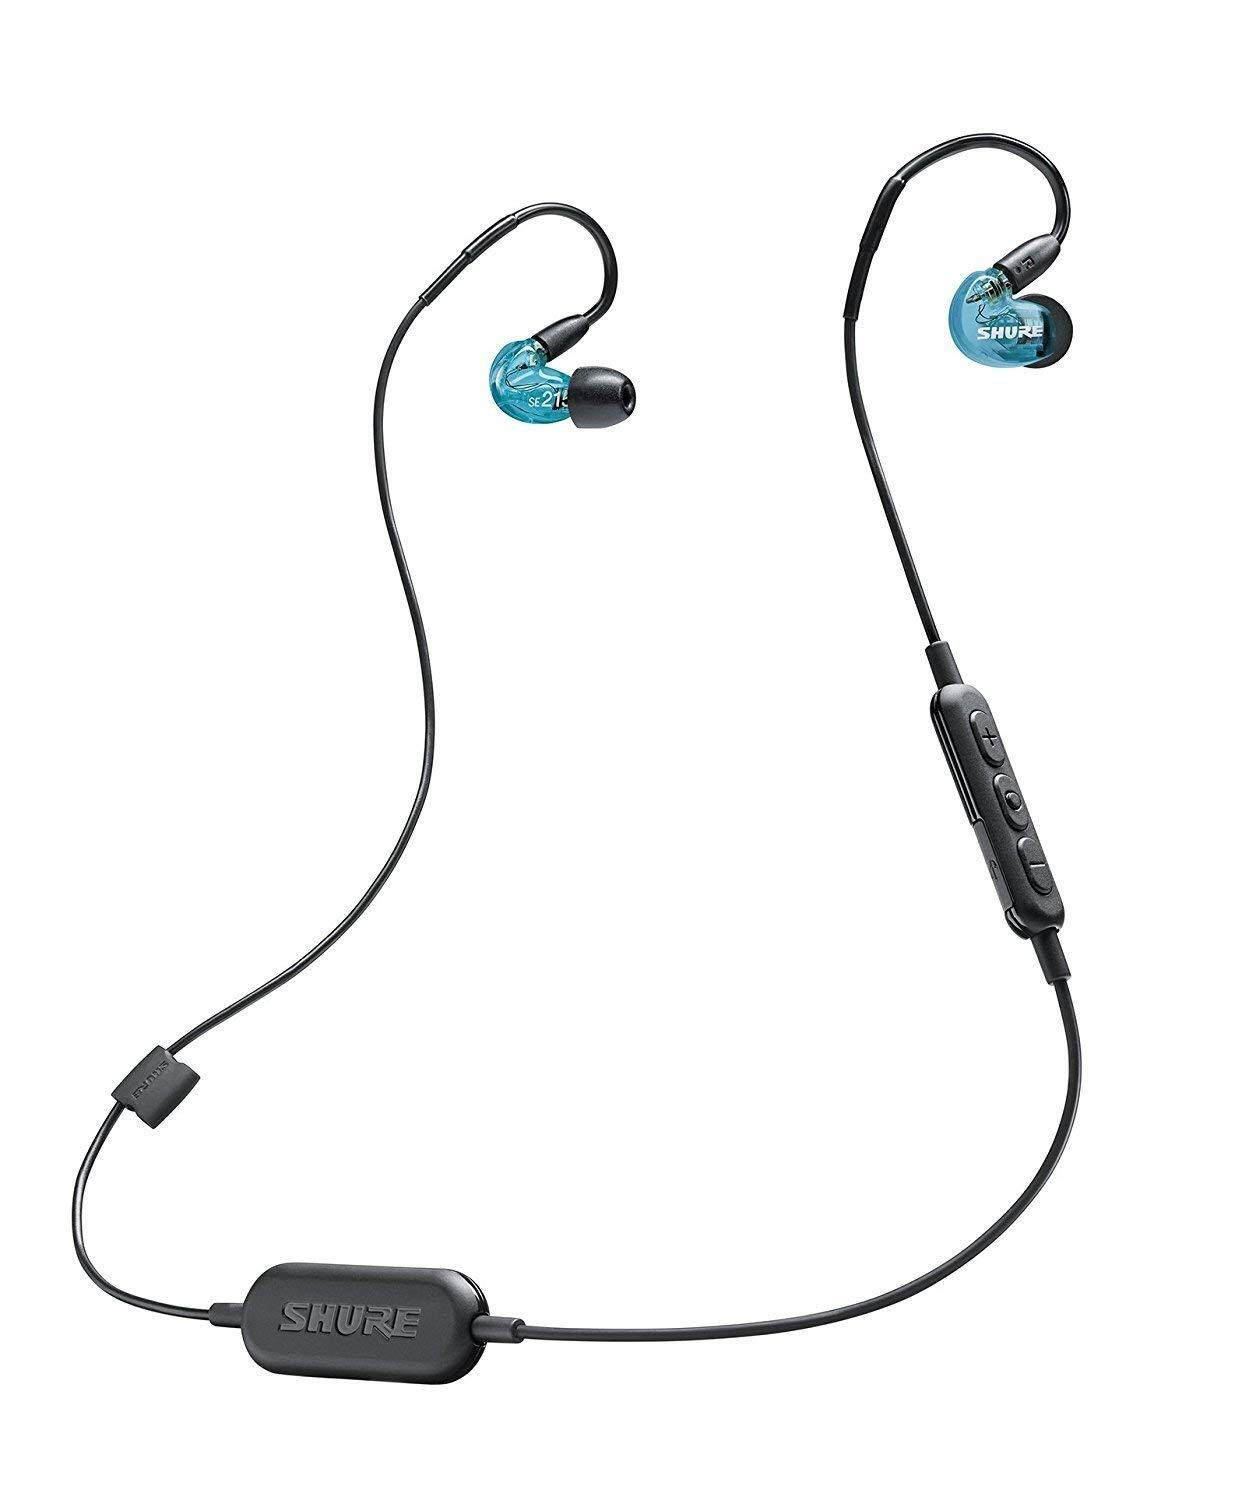 5adc31632c2 Shure SE215 Wireless Sound Isolating Earphones with Bluetooth Enabled  Communication Cable